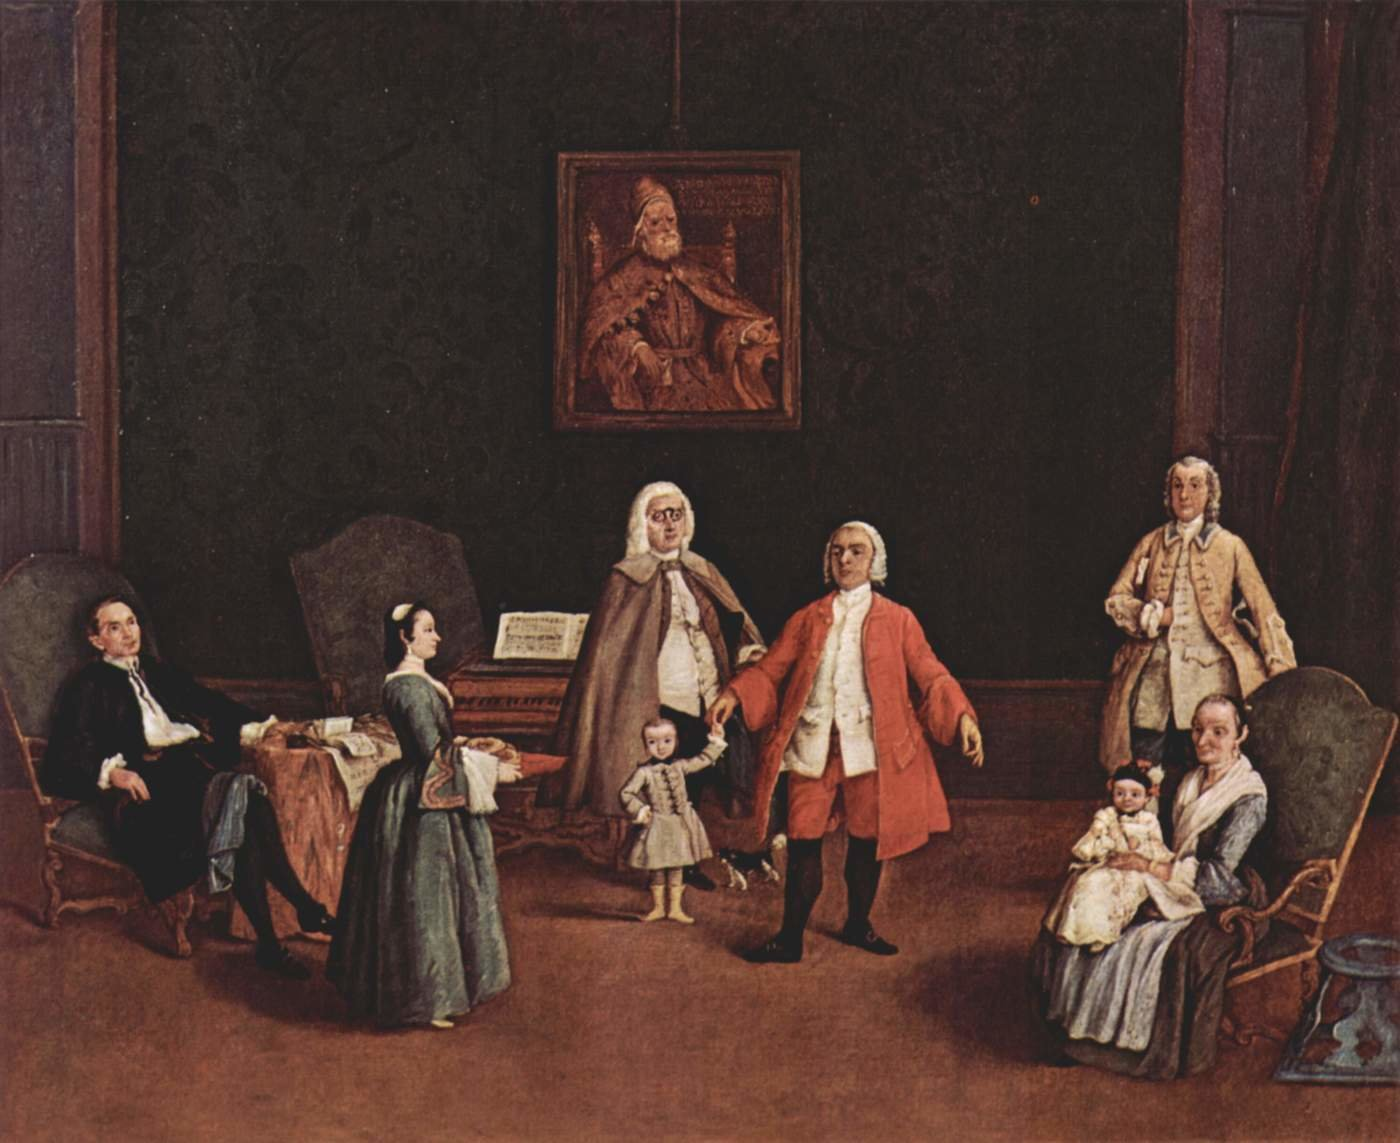 Pietro Longhi background